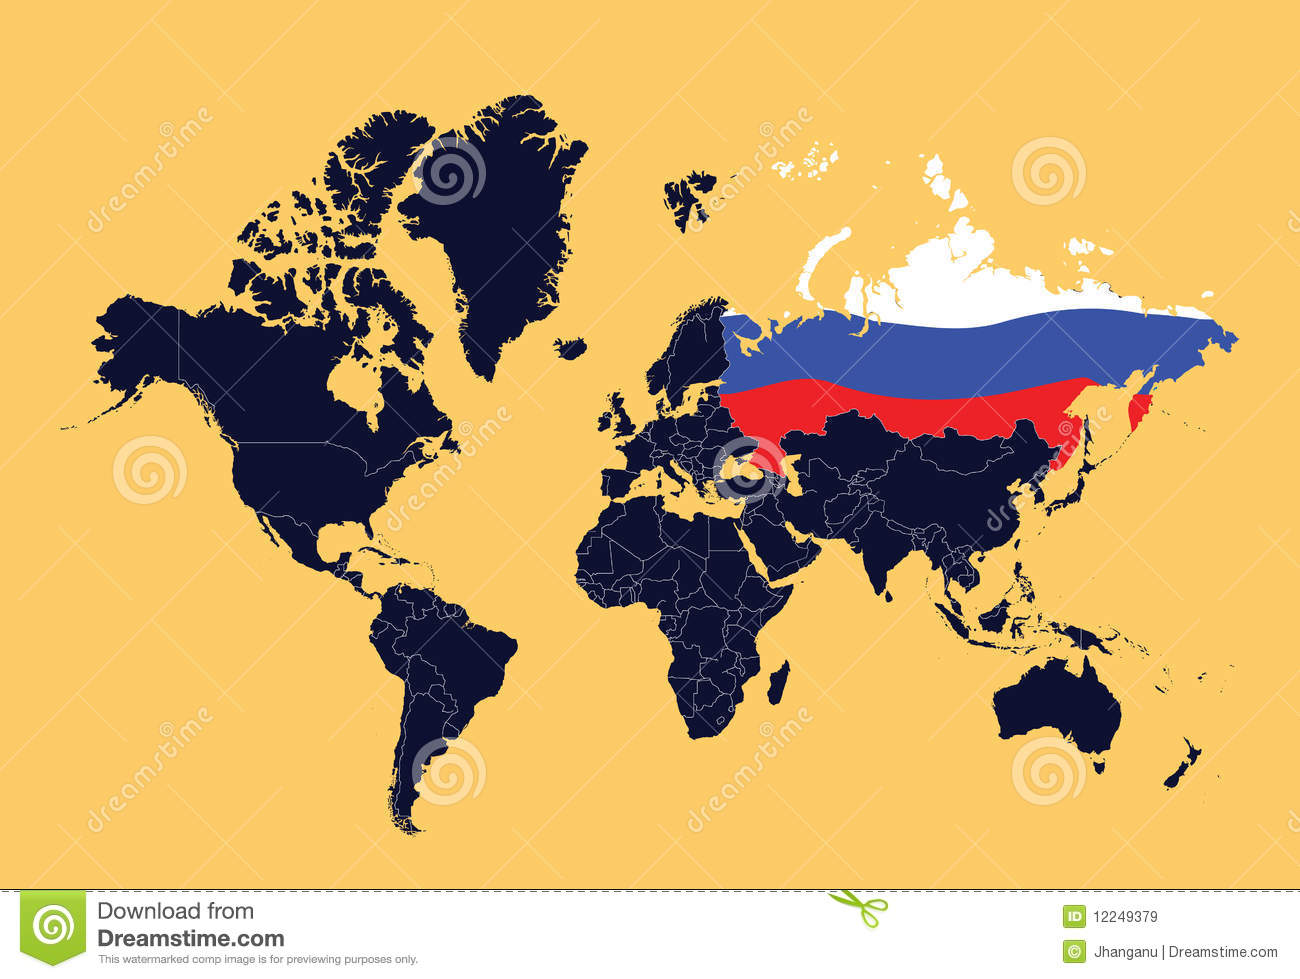 World Map Showing Russian Federation Stock Vector Illustration Of